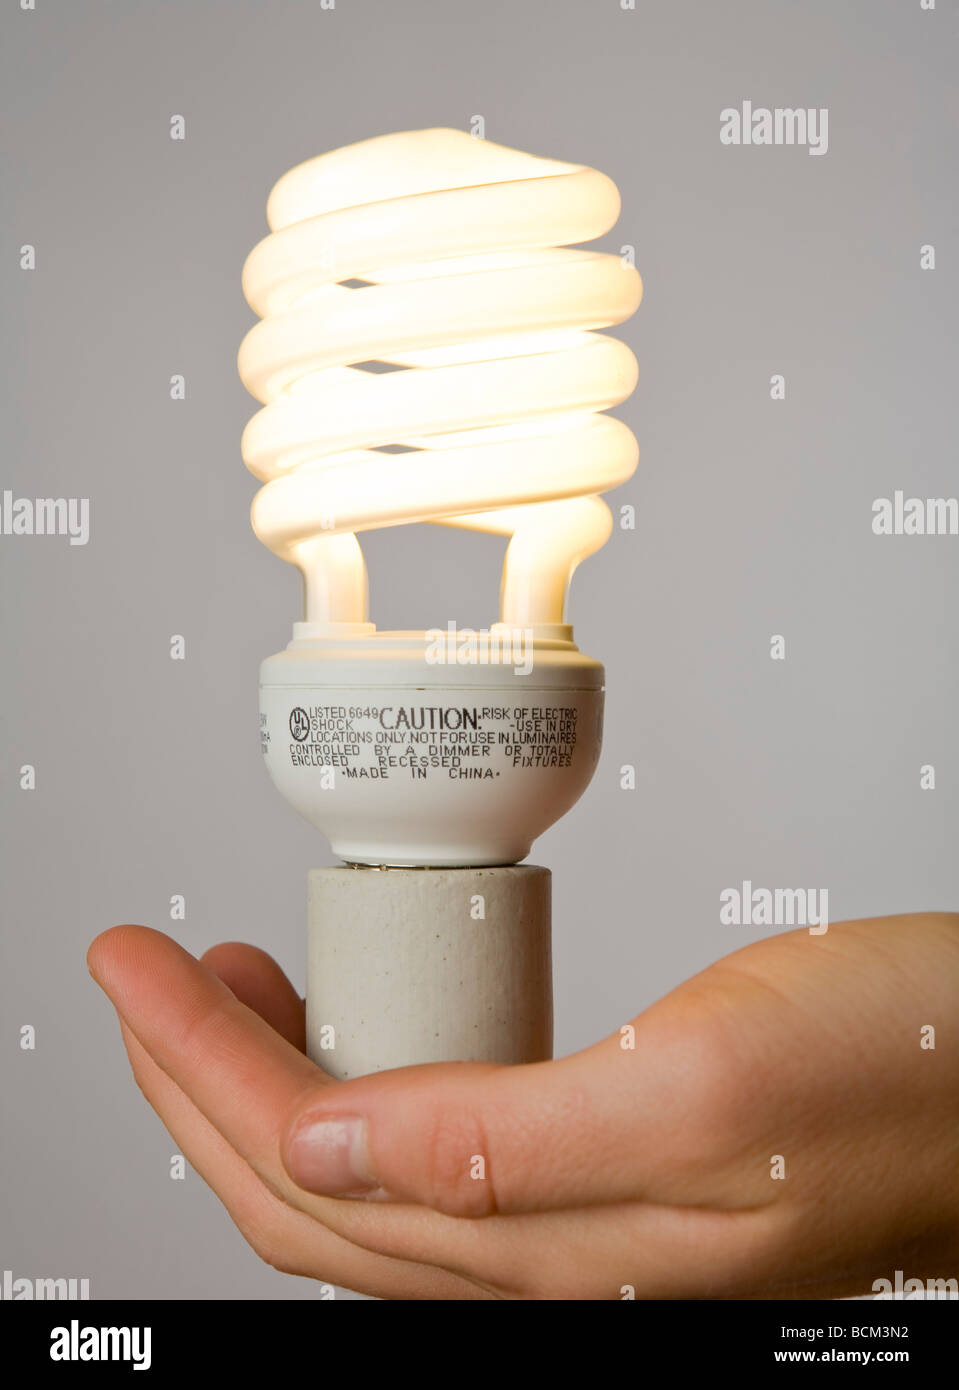 Hand holding a new Energy efficient Compact fluorescent lightbulb - Stock Image